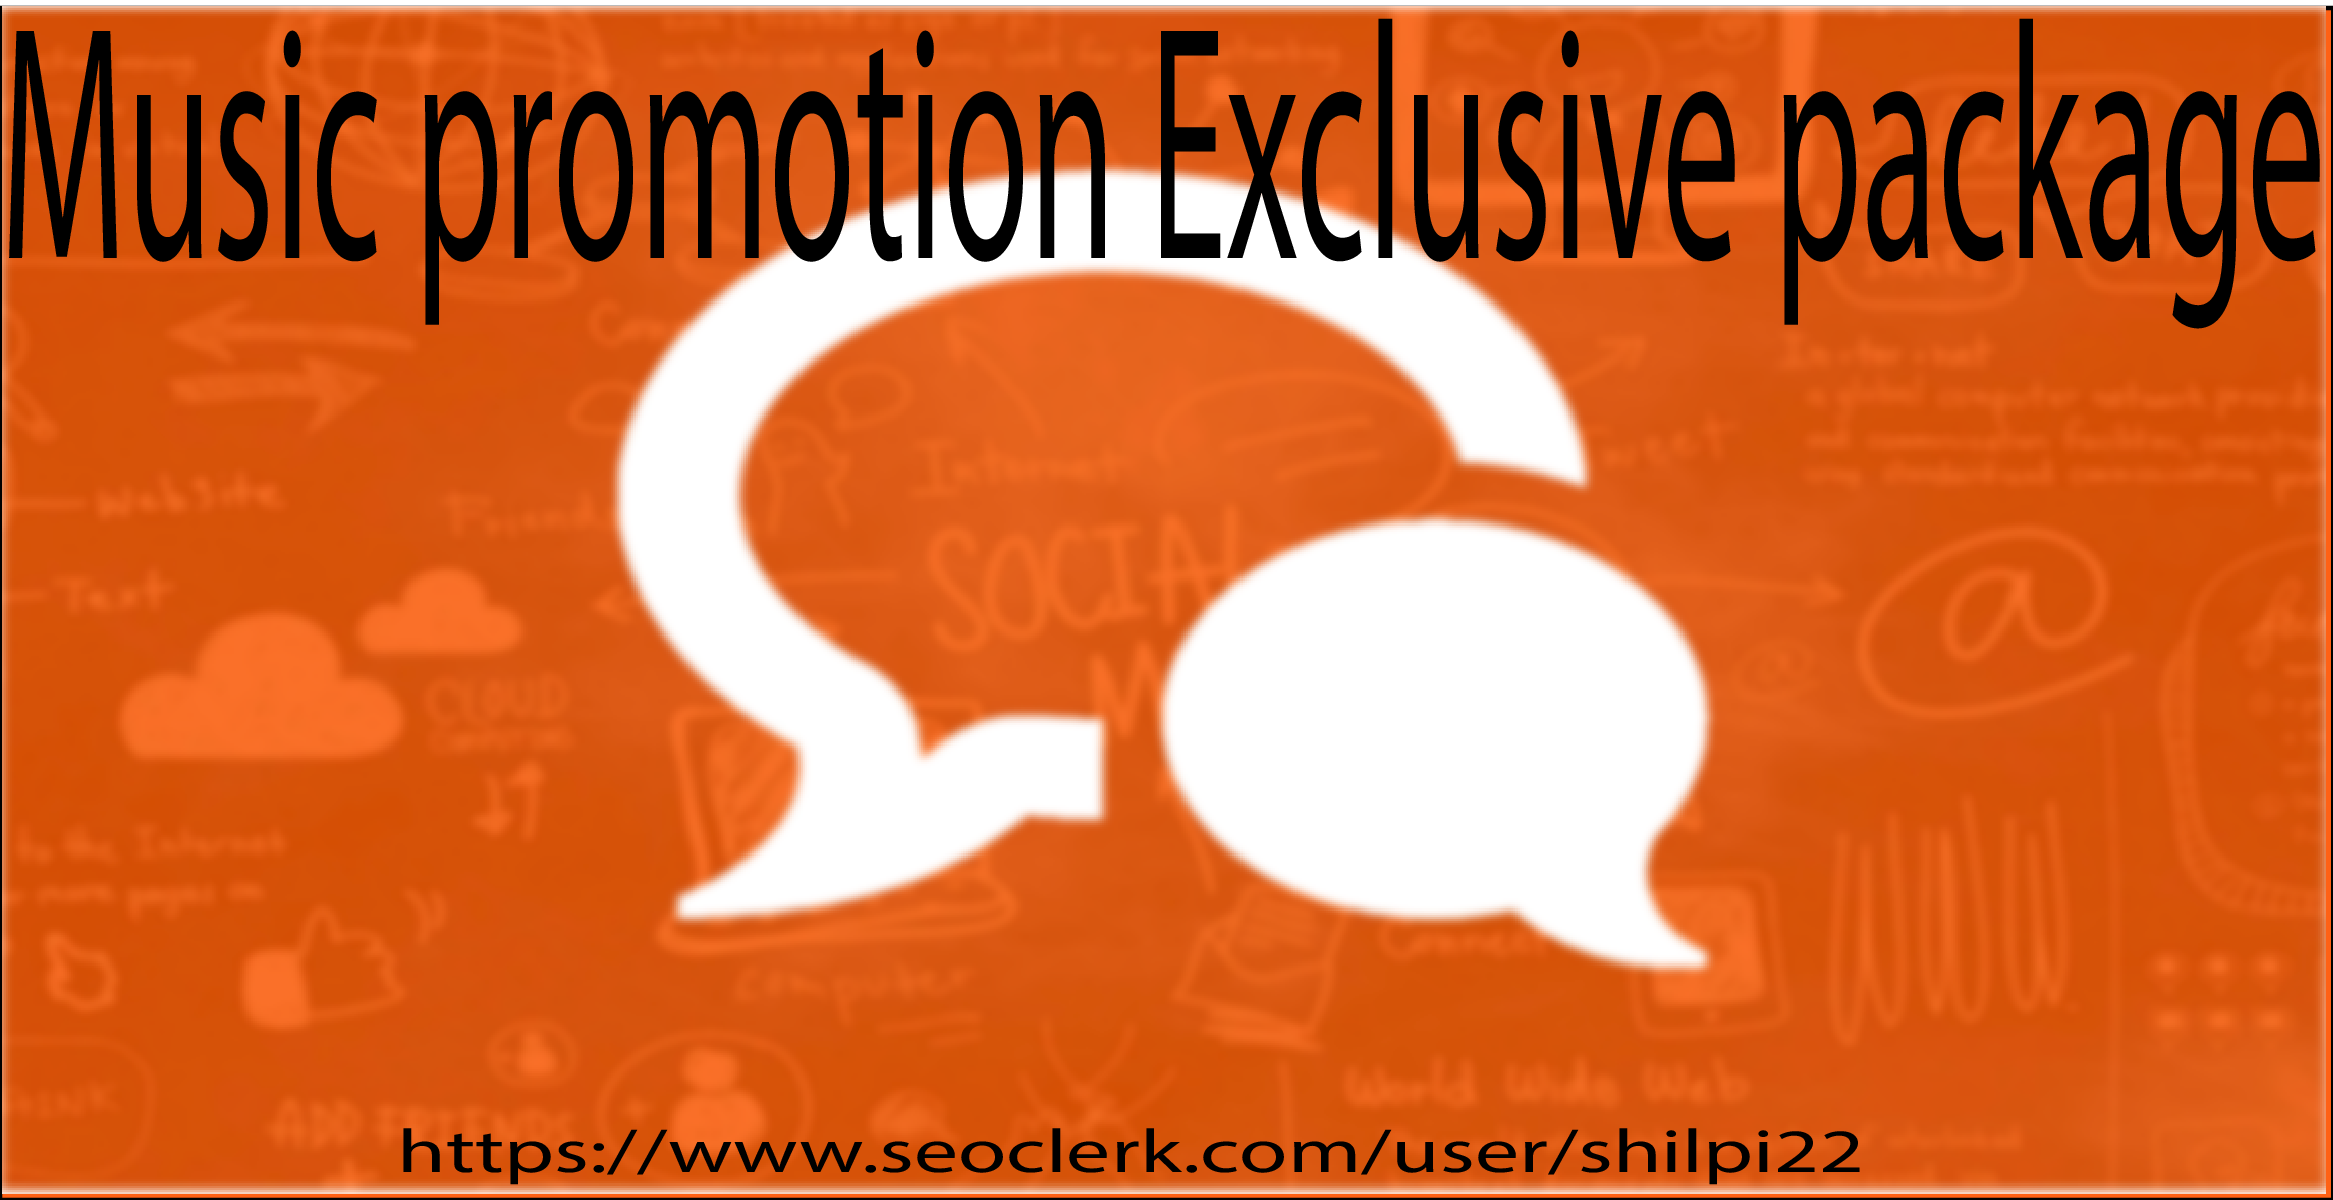 Purchase Exclusive 1000+ Music Promotion package